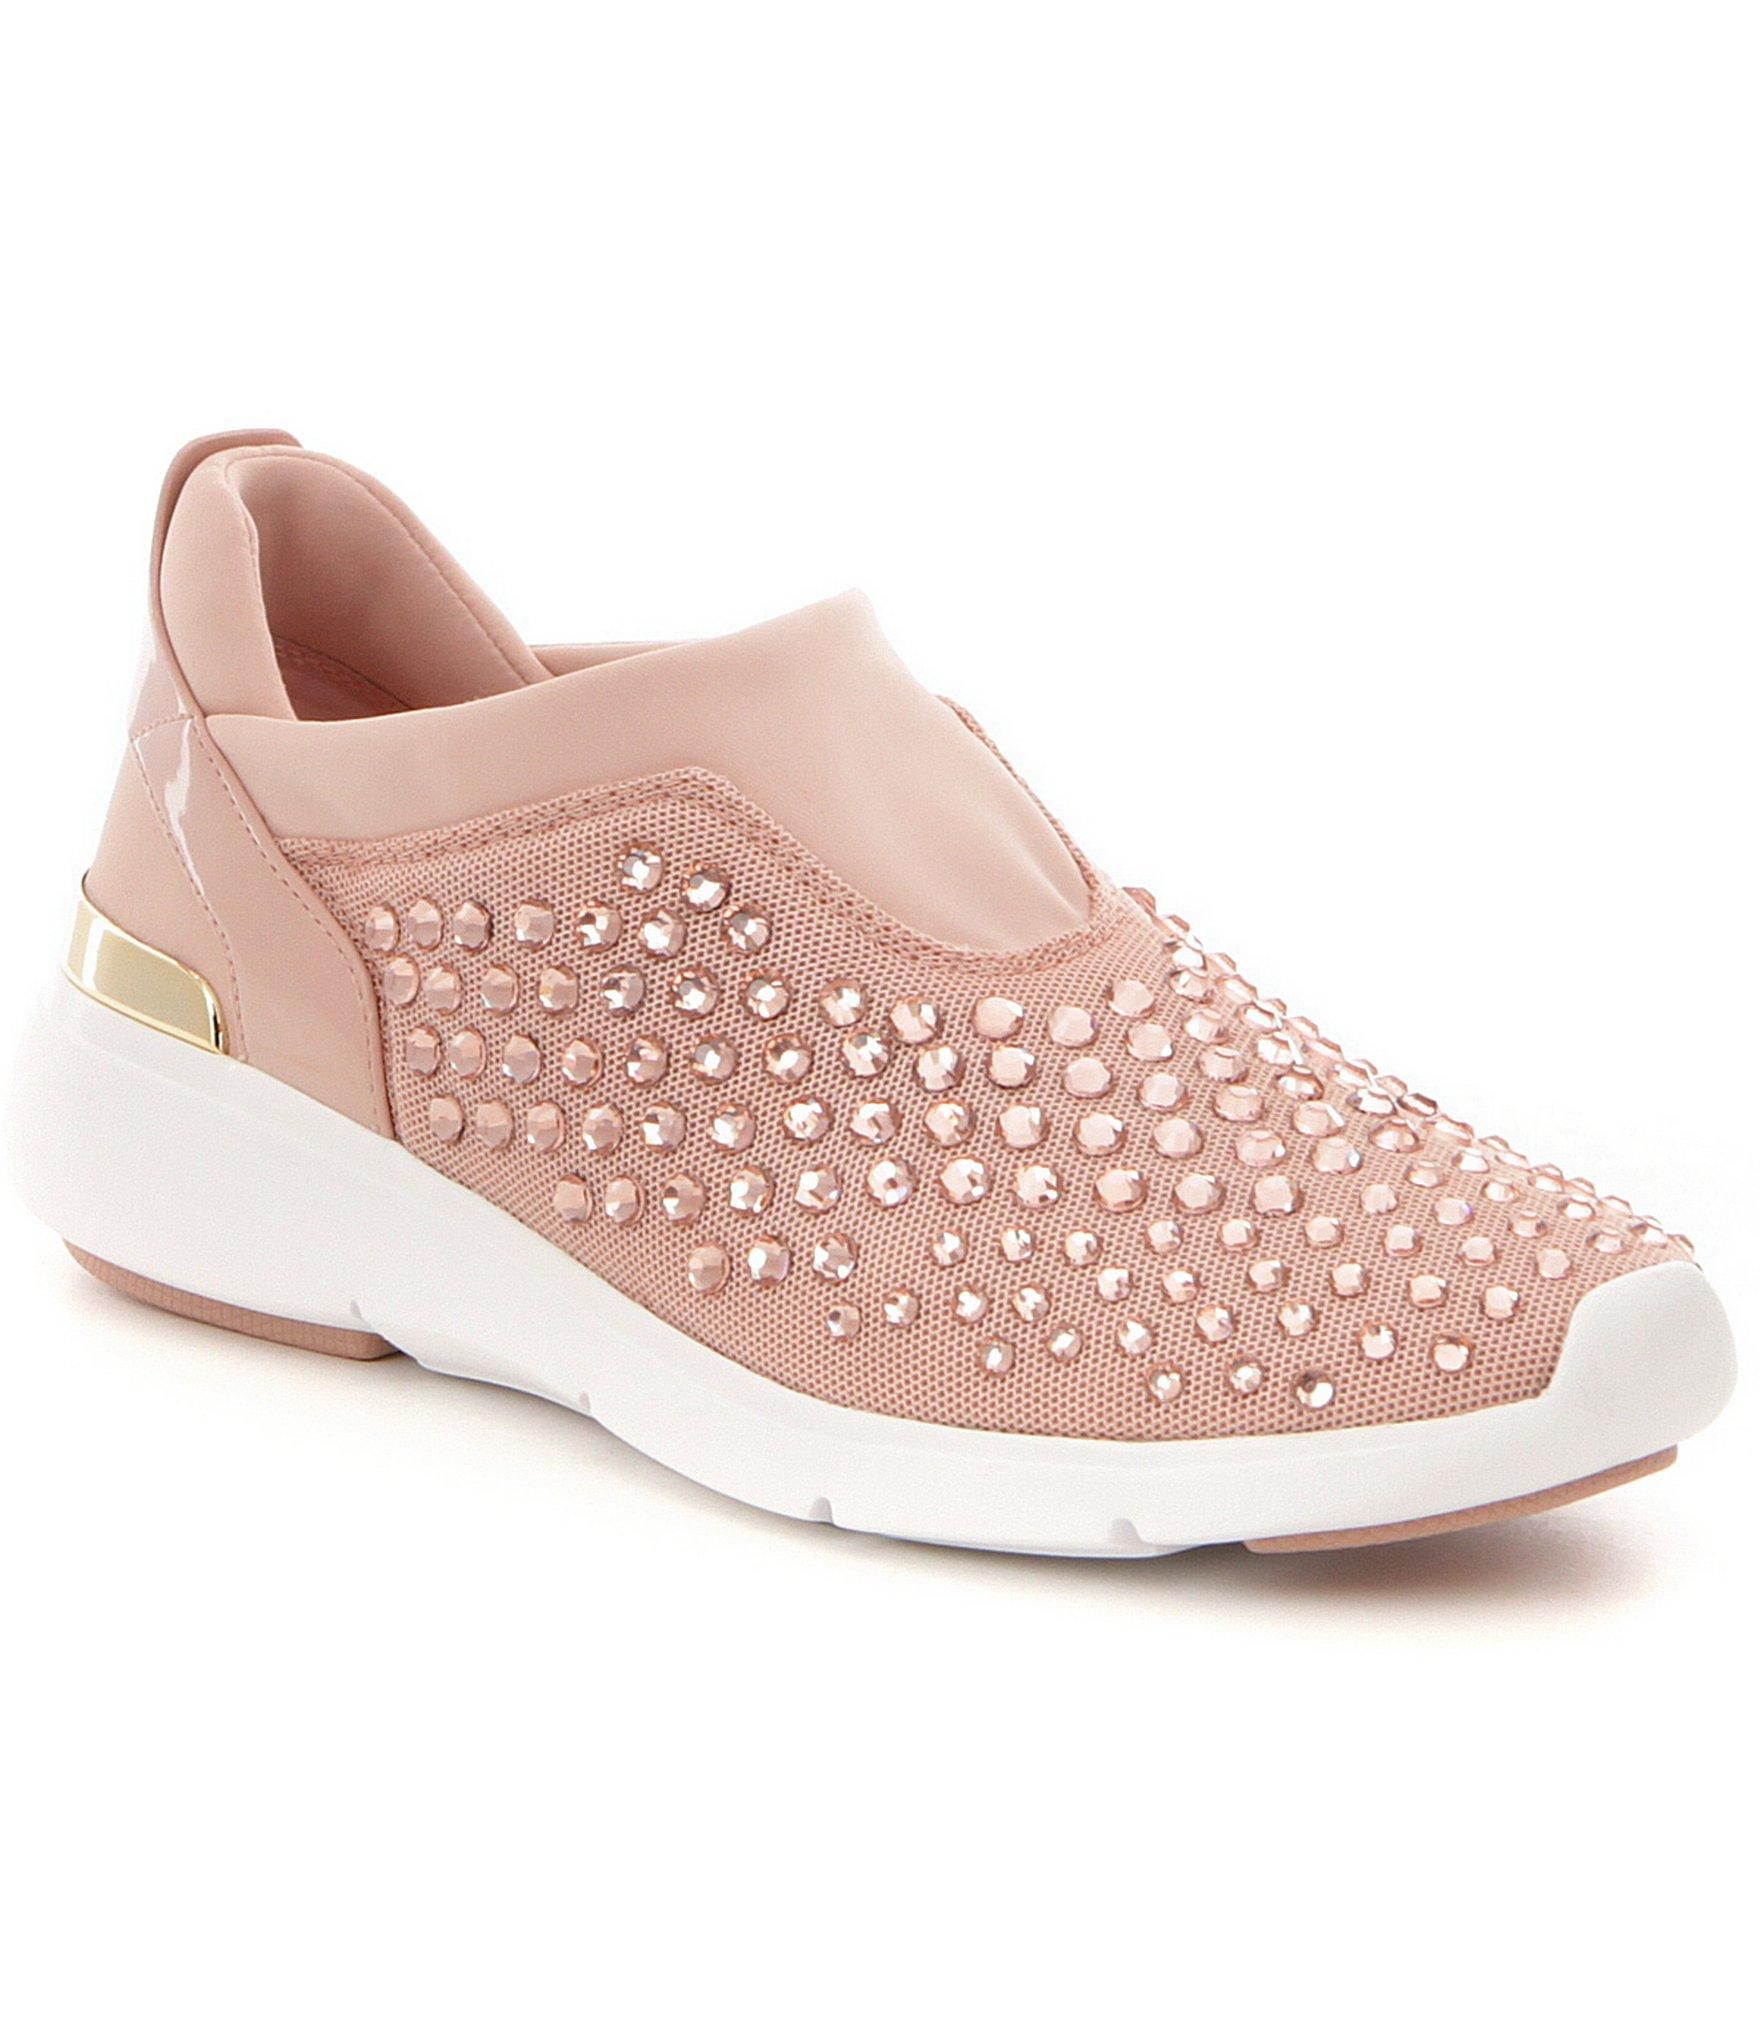 bb9c903a919b Lyst - MICHAEL Michael Kors Ace Rhinestone-embellished Sneakers in Pink